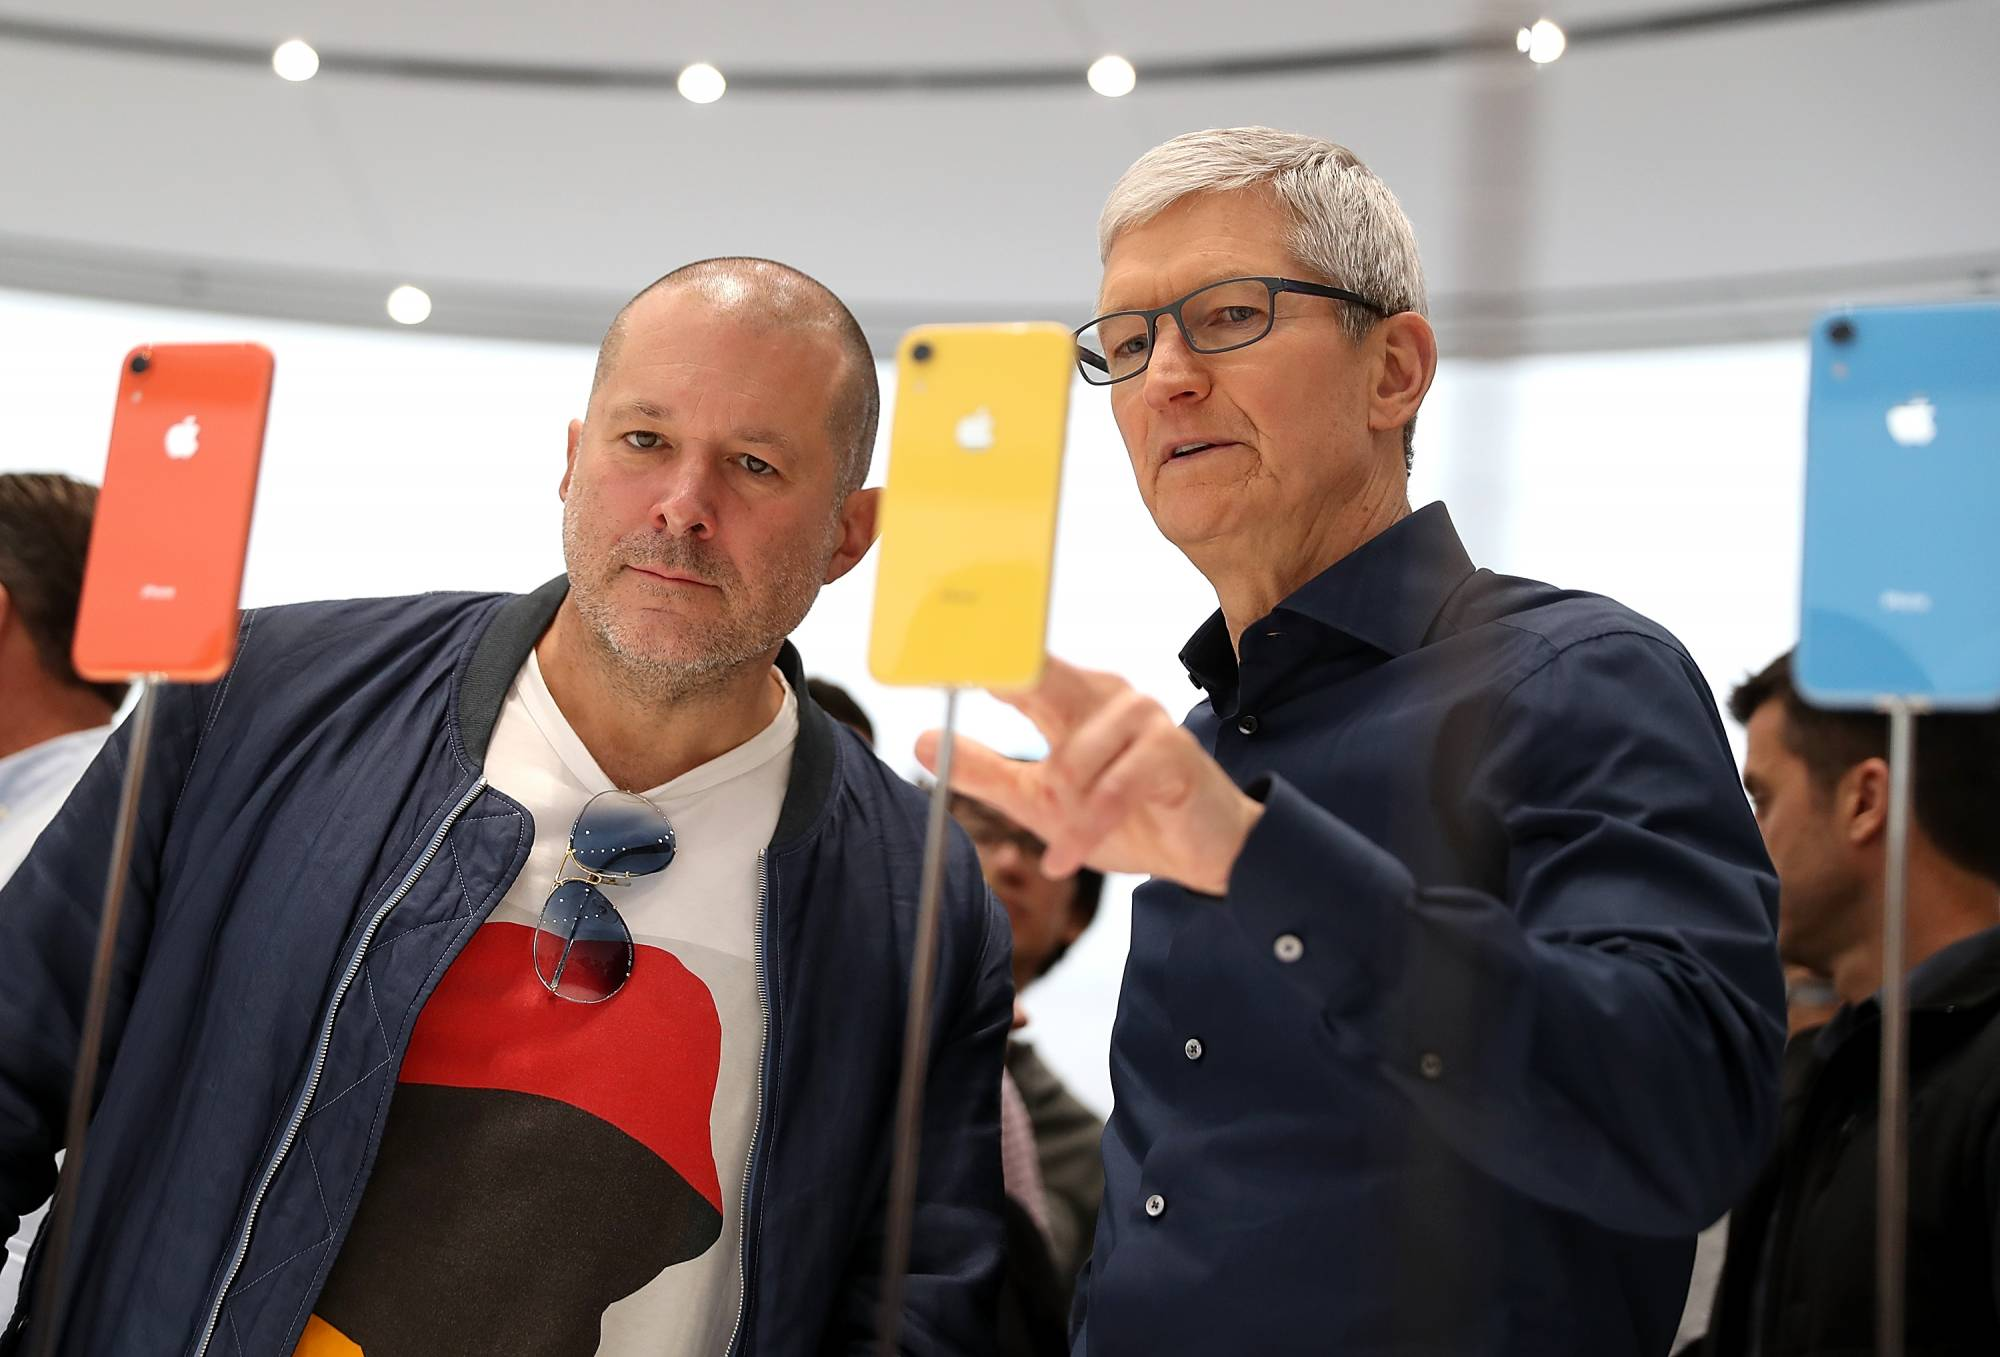 Apple Design Chief Jony Ive talks about design.